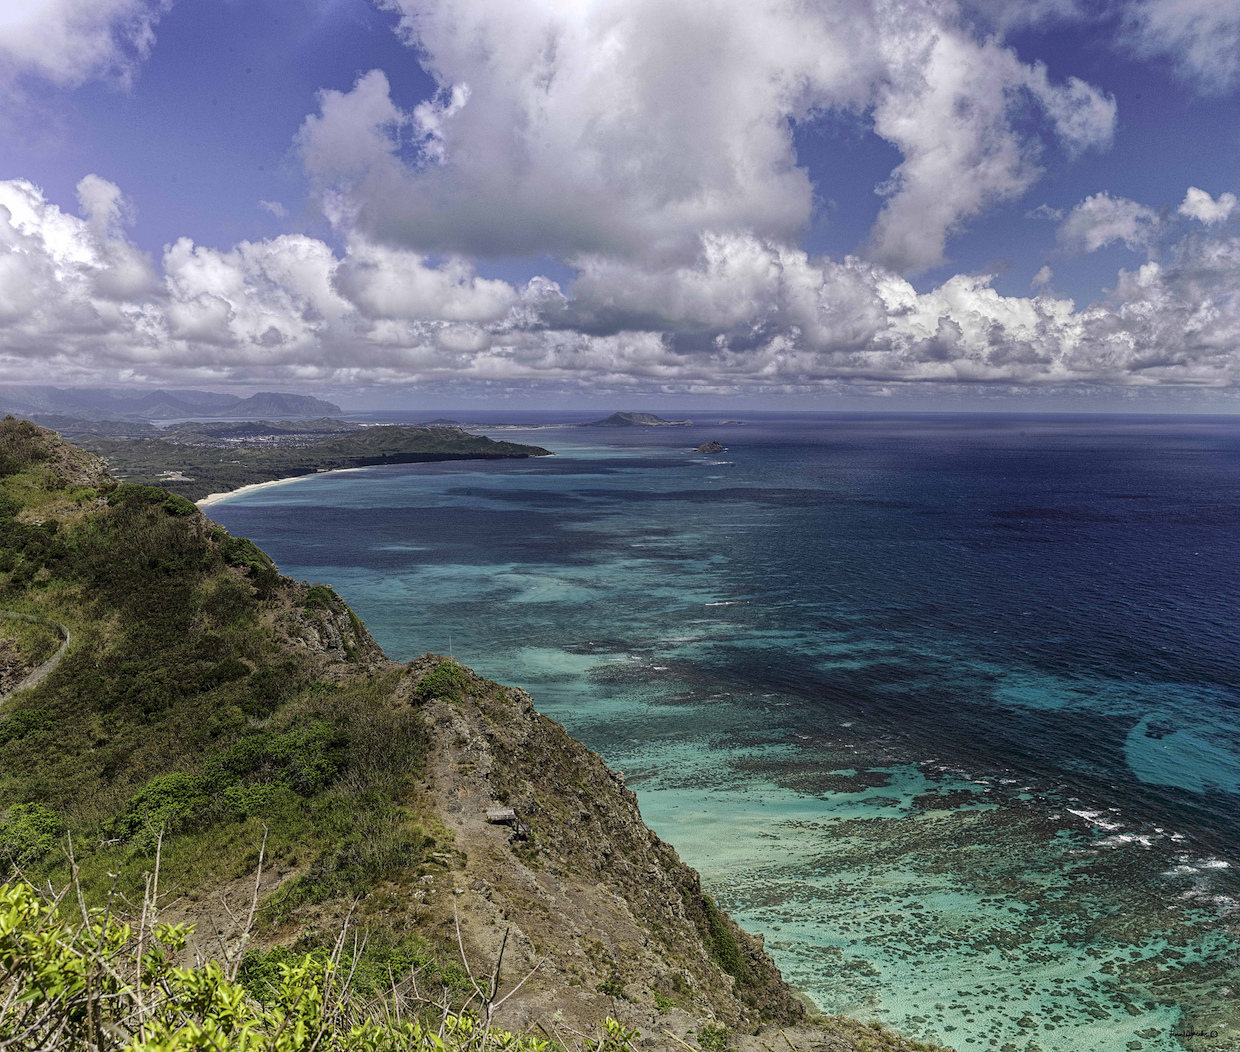 MakapuutoLaunchridge042112-9999162-4 Panorama copy | © Leonard S Jacobs/Flickr